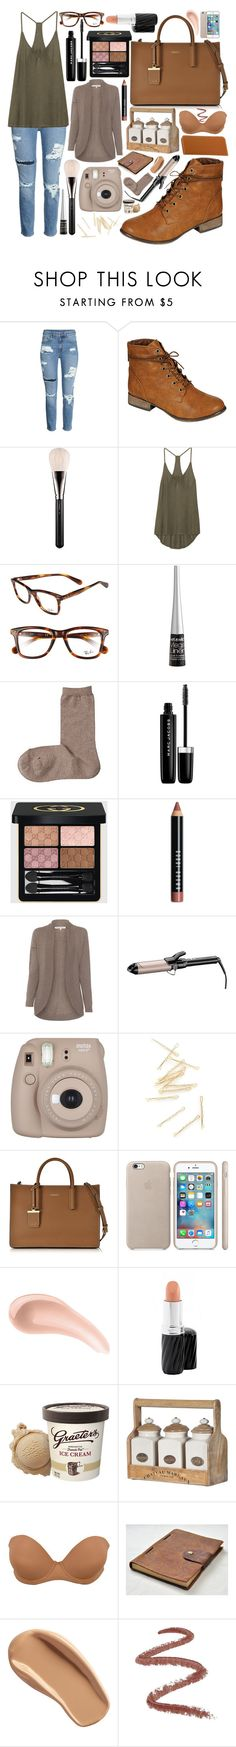 """Nudes and Browns rustic look"" by annalaris on Polyvore featuring Breckelle's, MAC Cosmetics, Enza Costa, Ray-Ban, Wet n Wild, Marc Jacobs, Gucci, Bobbi Brown Cosmetics, Rani Arabella and Conair"